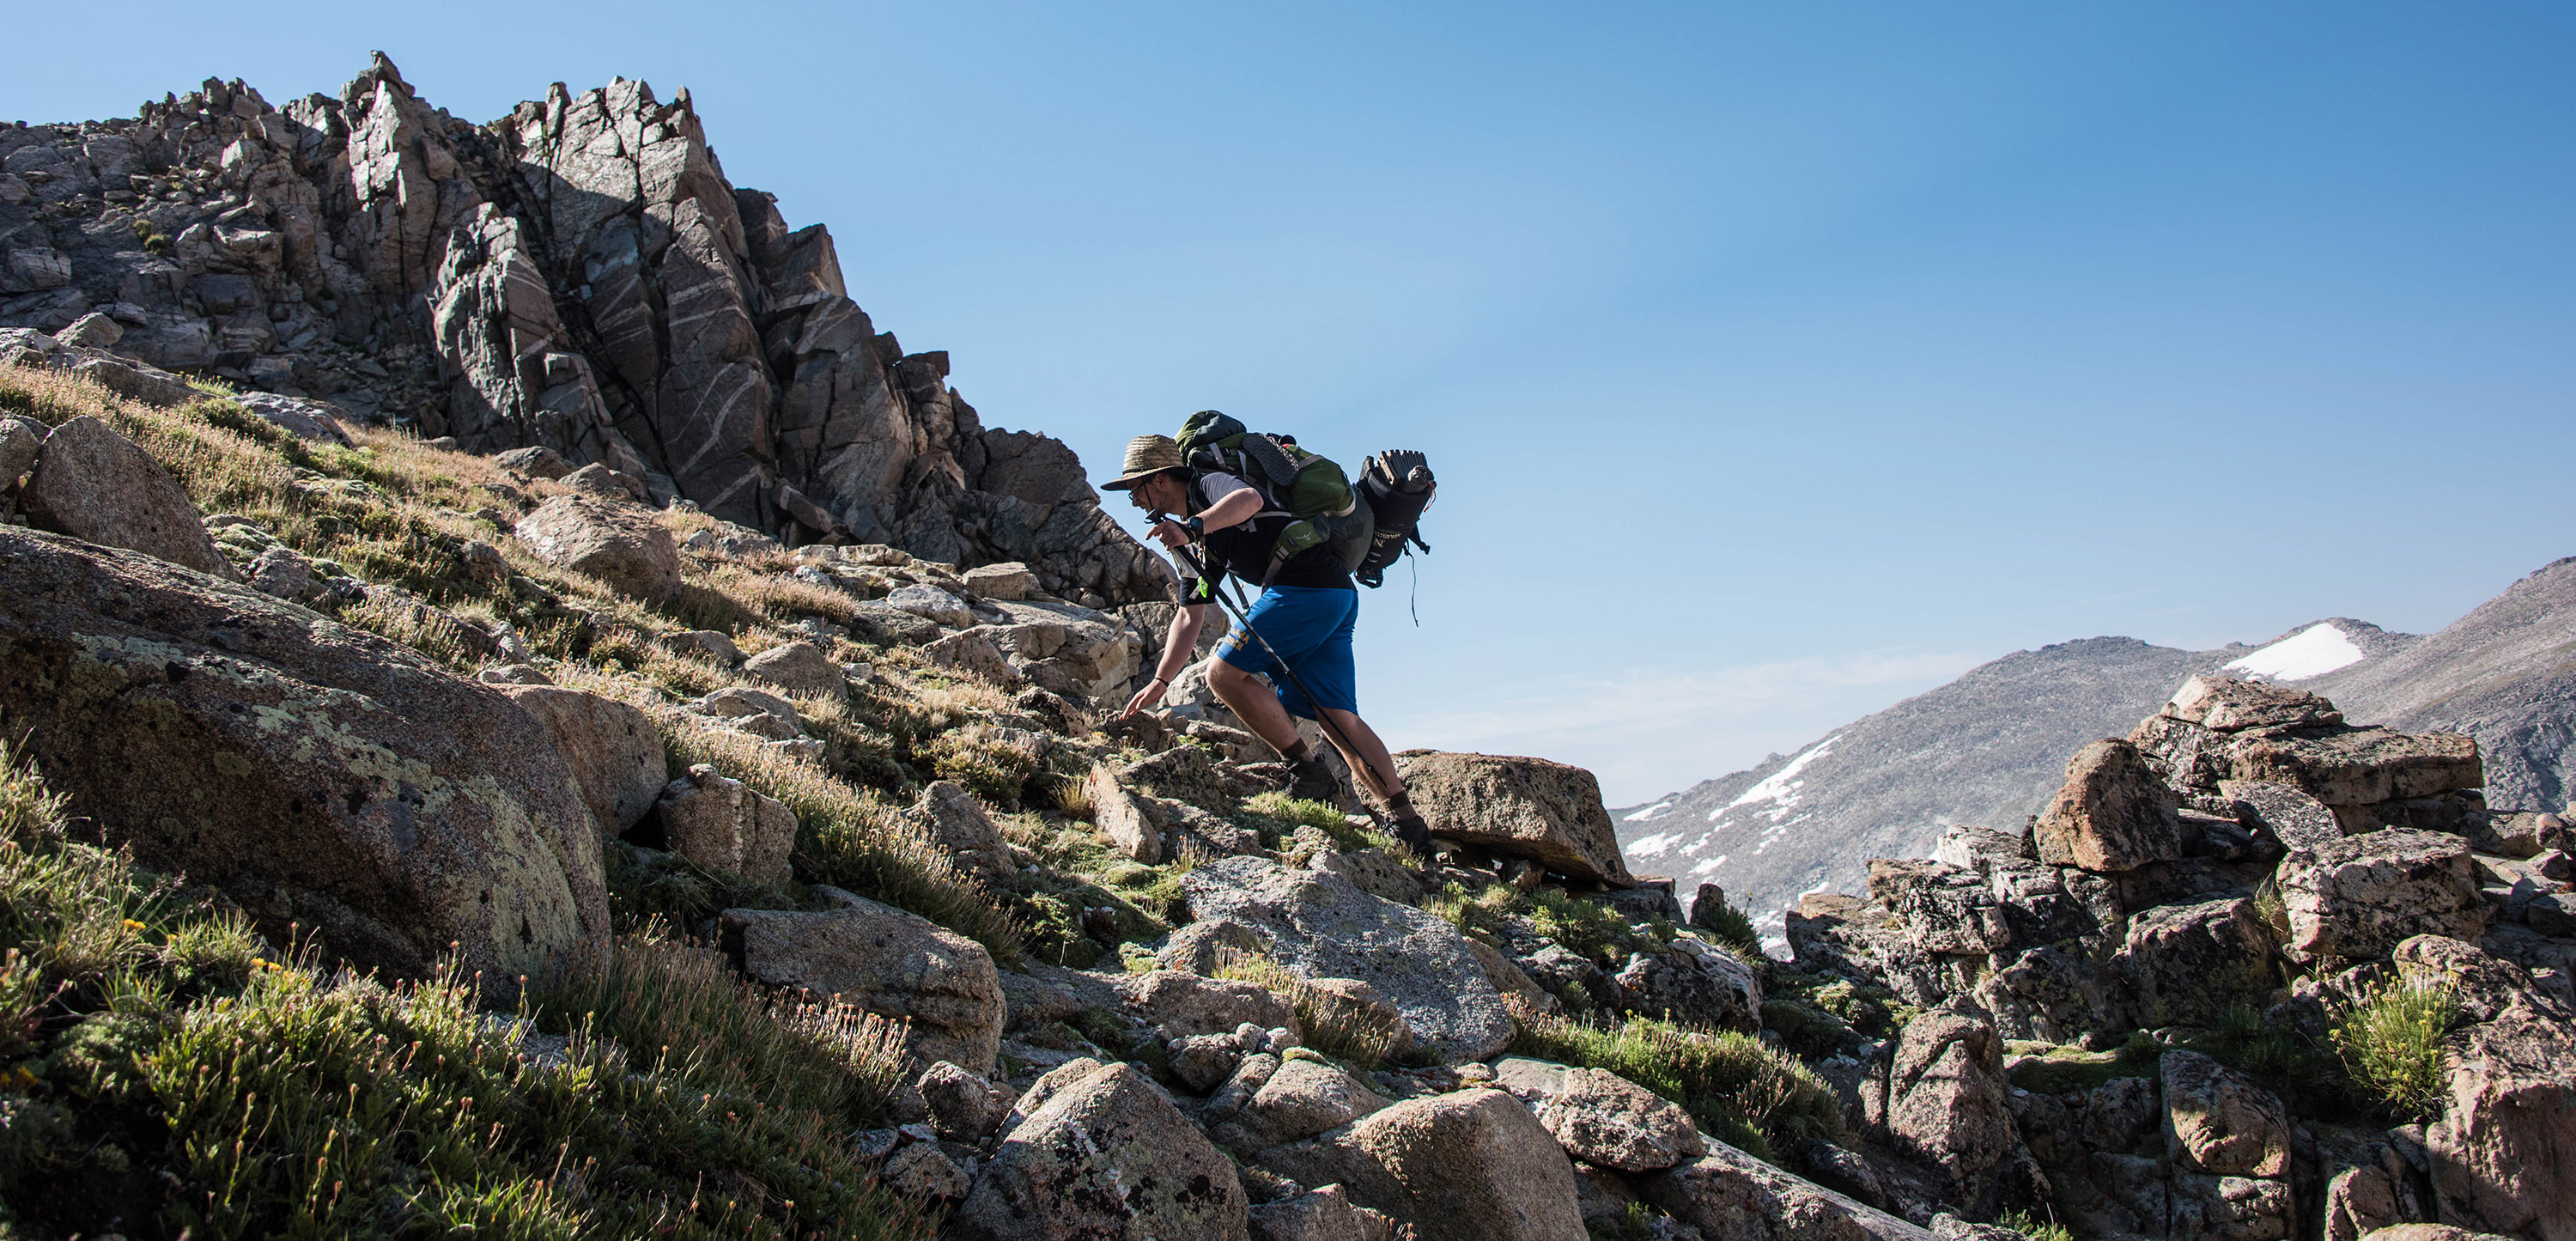 Issac Ward hikes up a steep incline on day five in the backcountry. (Mariah Lundgren)